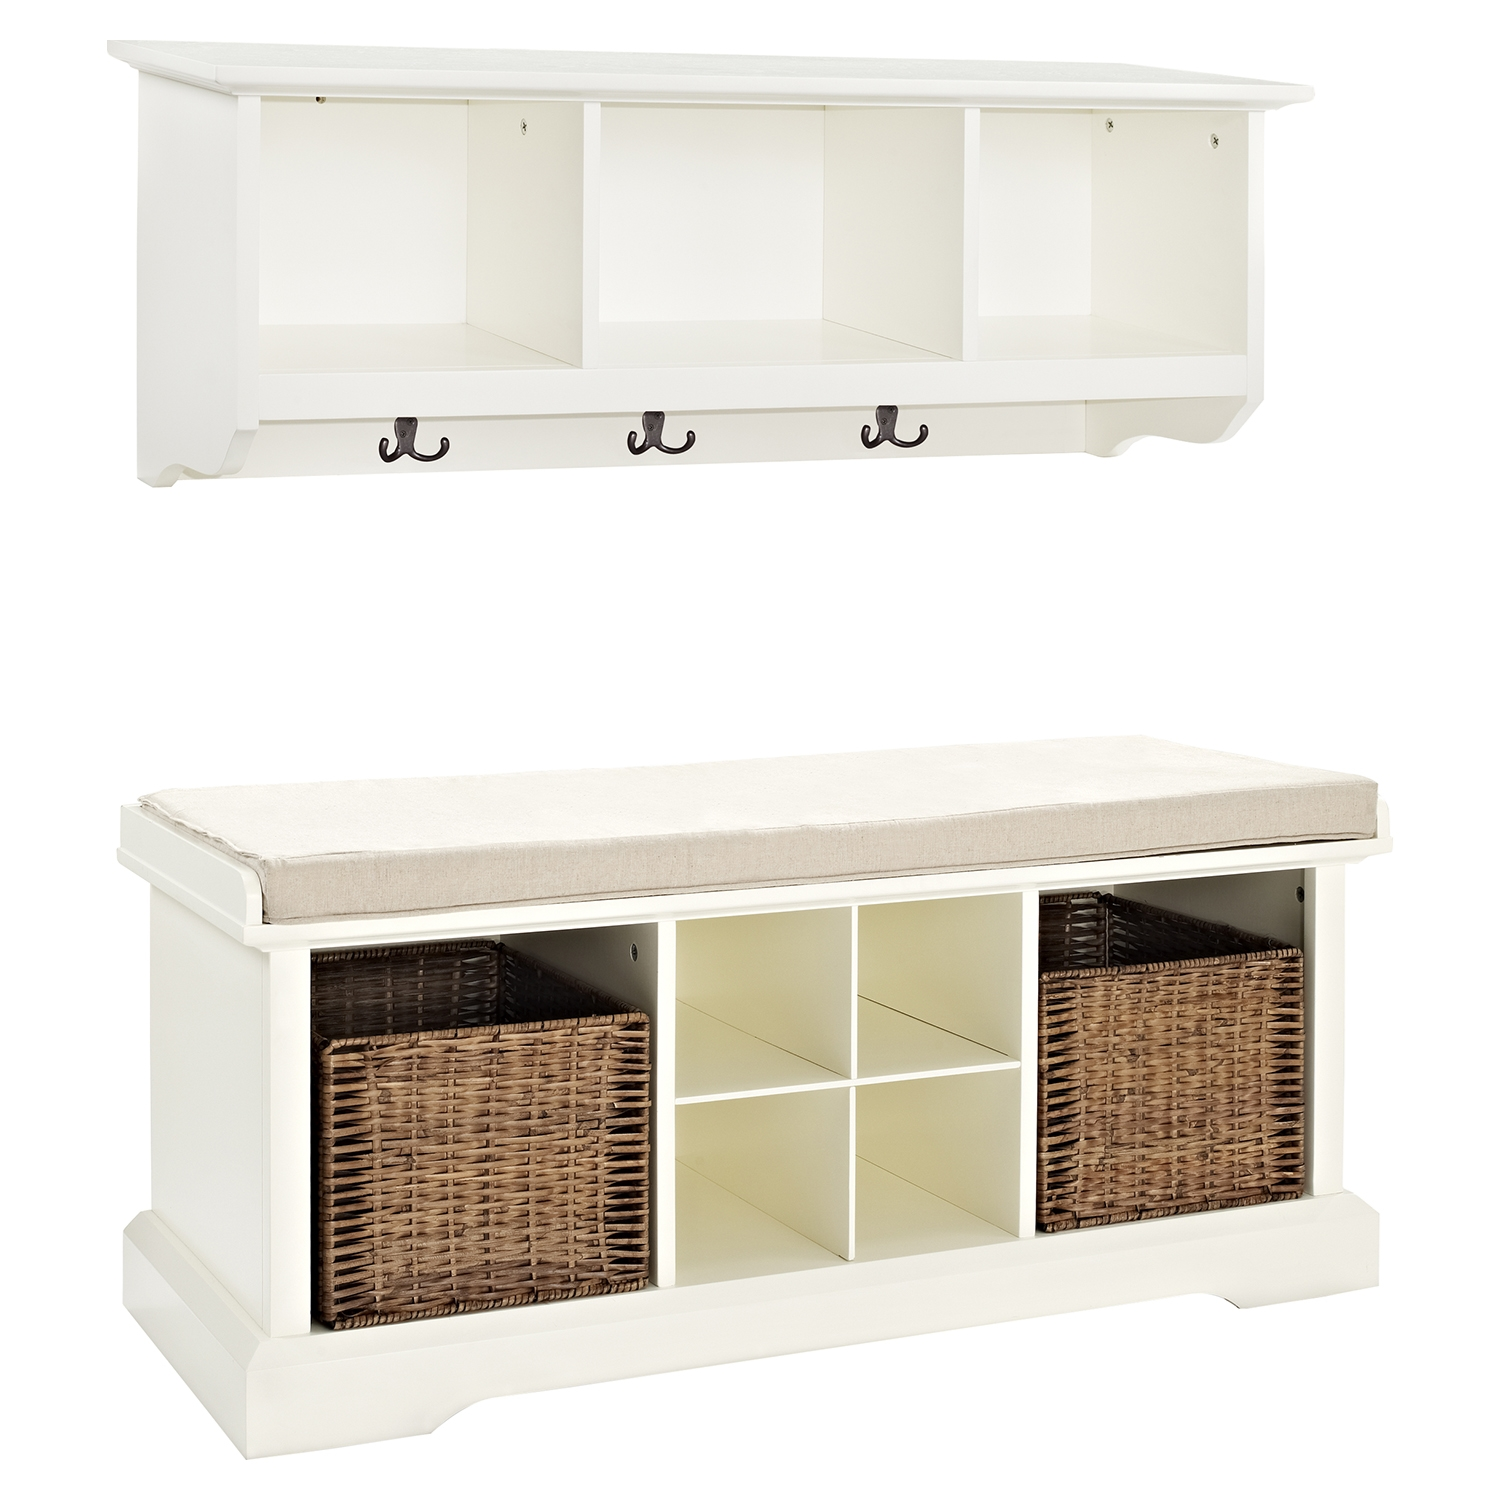 Brennan 2 Pieces Entryway Bench and Shelf Set - White - CROS-KF60001WH